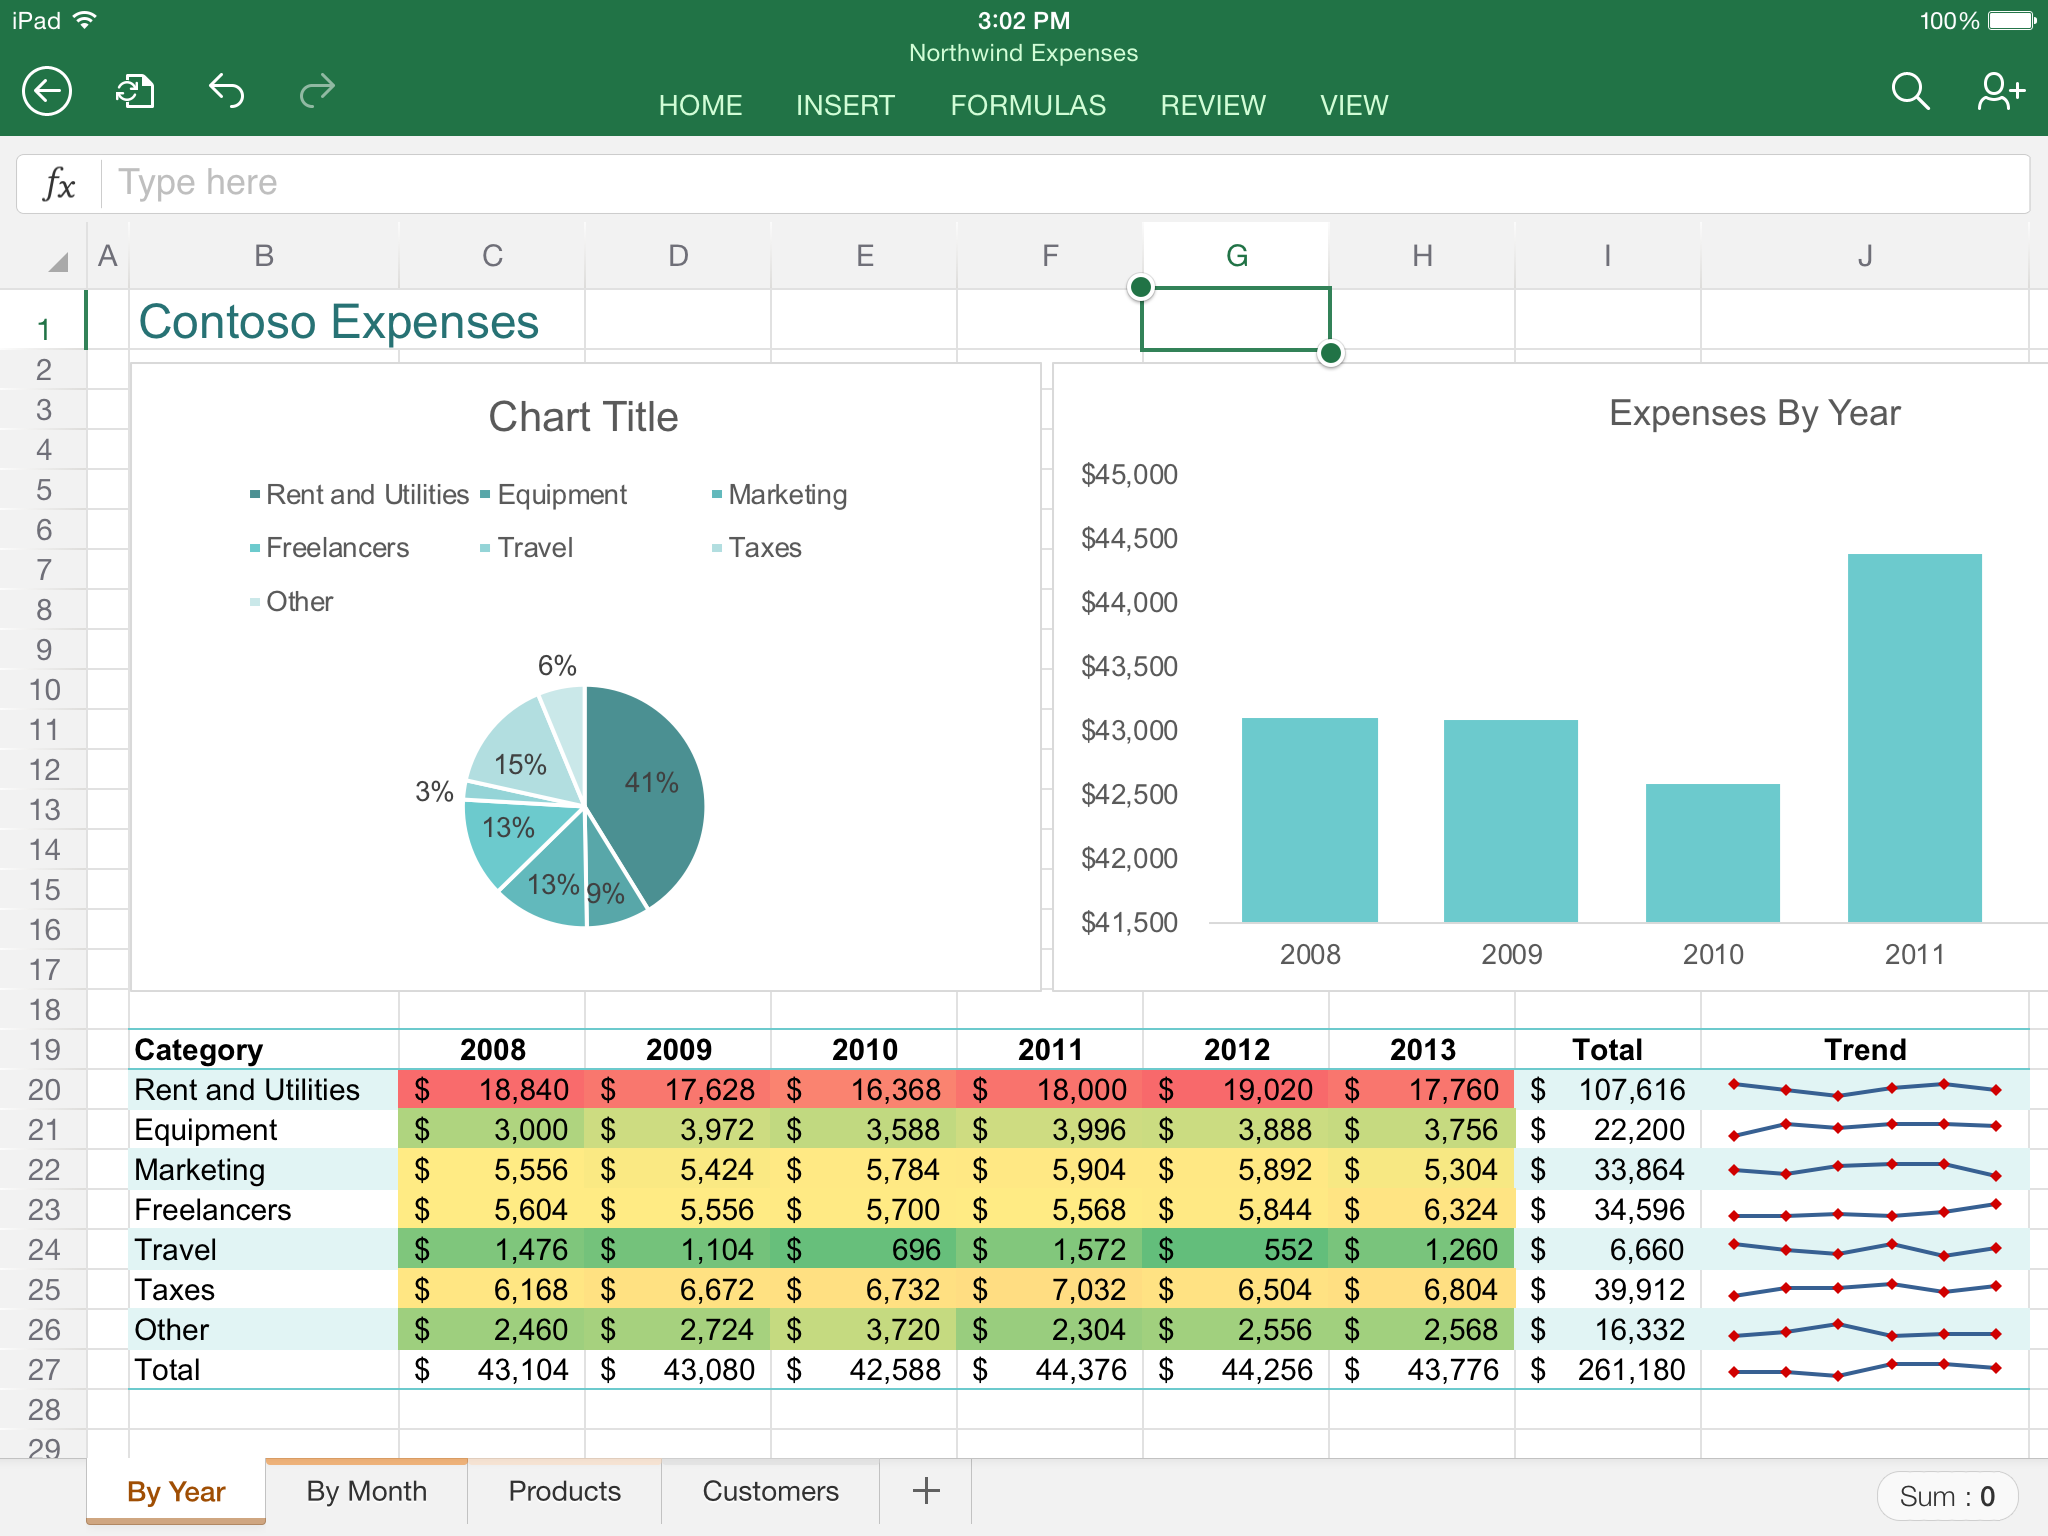 Ediblewildsus  Mesmerizing App Highlight Excel  Mobile Digital Now With Luxury Excel In Action With Agreeable Excel Crm Template Also Factset Excel Add In In Addition How To Find Range On Excel And Exponential Function Excel As Well As Best Excel Books Additionally Excel Add Developer Tab From Youstonybrookedu With Ediblewildsus  Luxury App Highlight Excel  Mobile Digital Now With Agreeable Excel In Action And Mesmerizing Excel Crm Template Also Factset Excel Add In In Addition How To Find Range On Excel From Youstonybrookedu